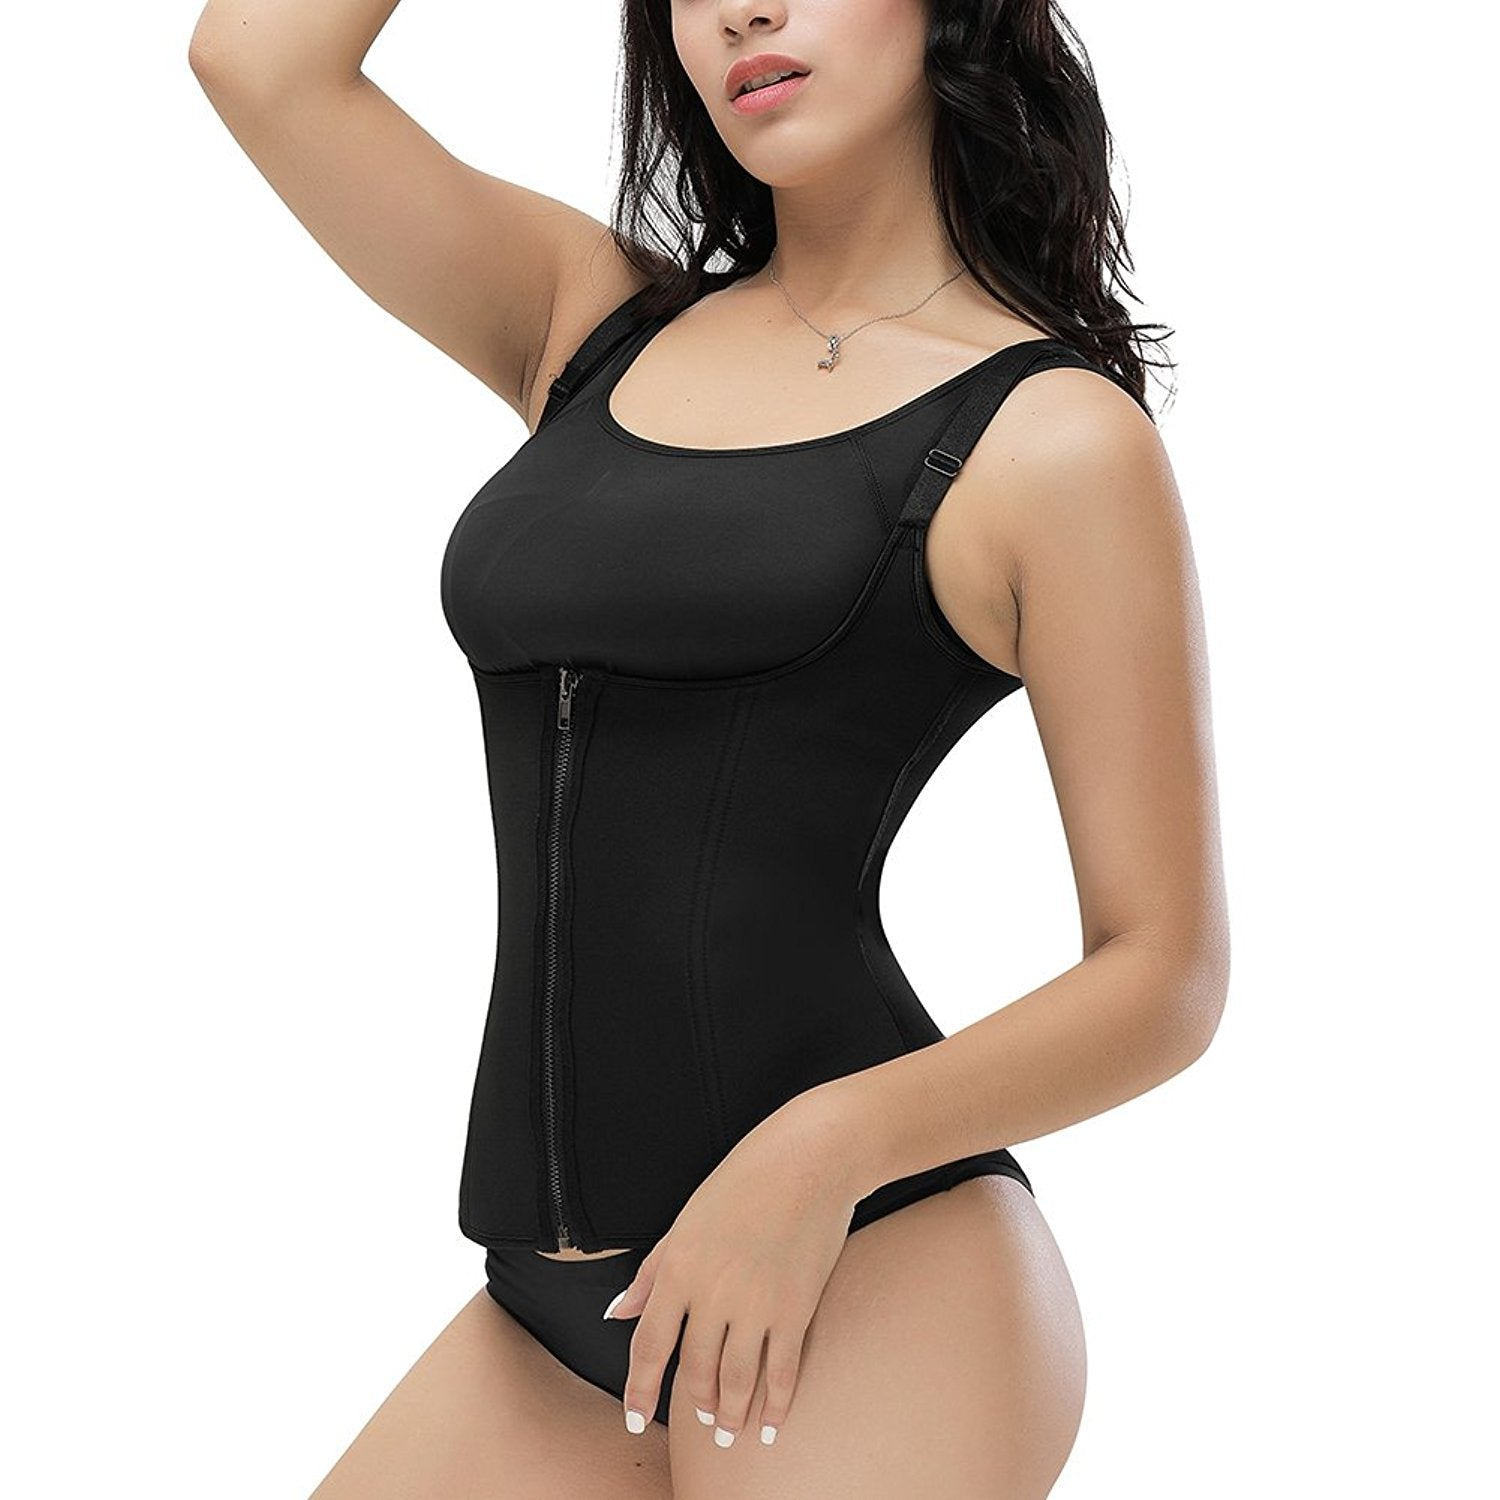 Sauna Workout Corset Waist Trainer Cincher Body Shaper